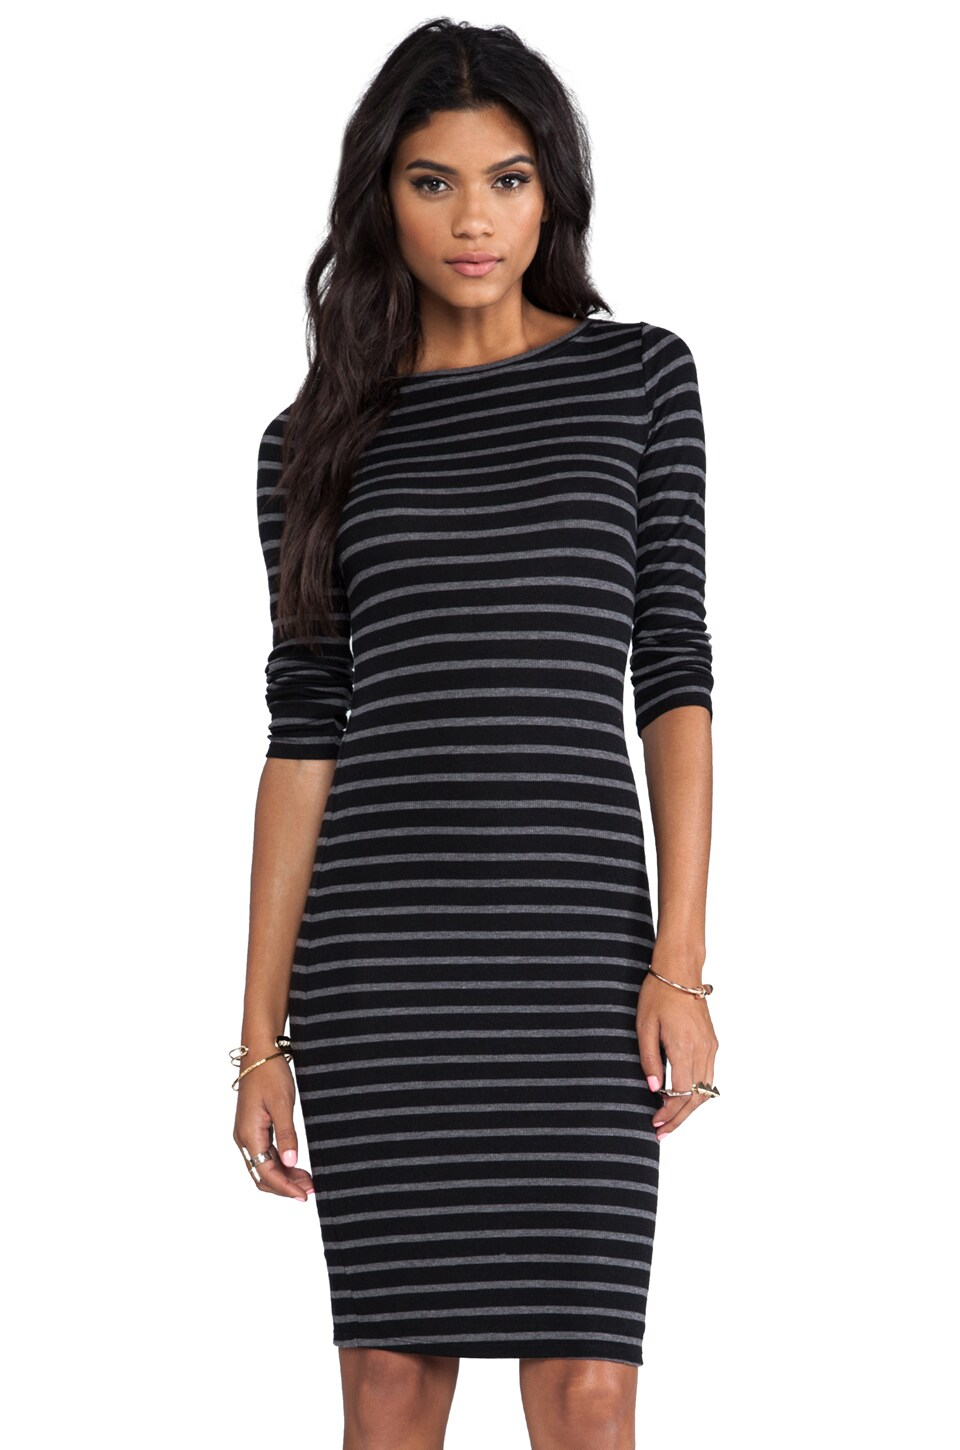 BCBGMAXAZRIA Briza Dress in Black/Grey Combo